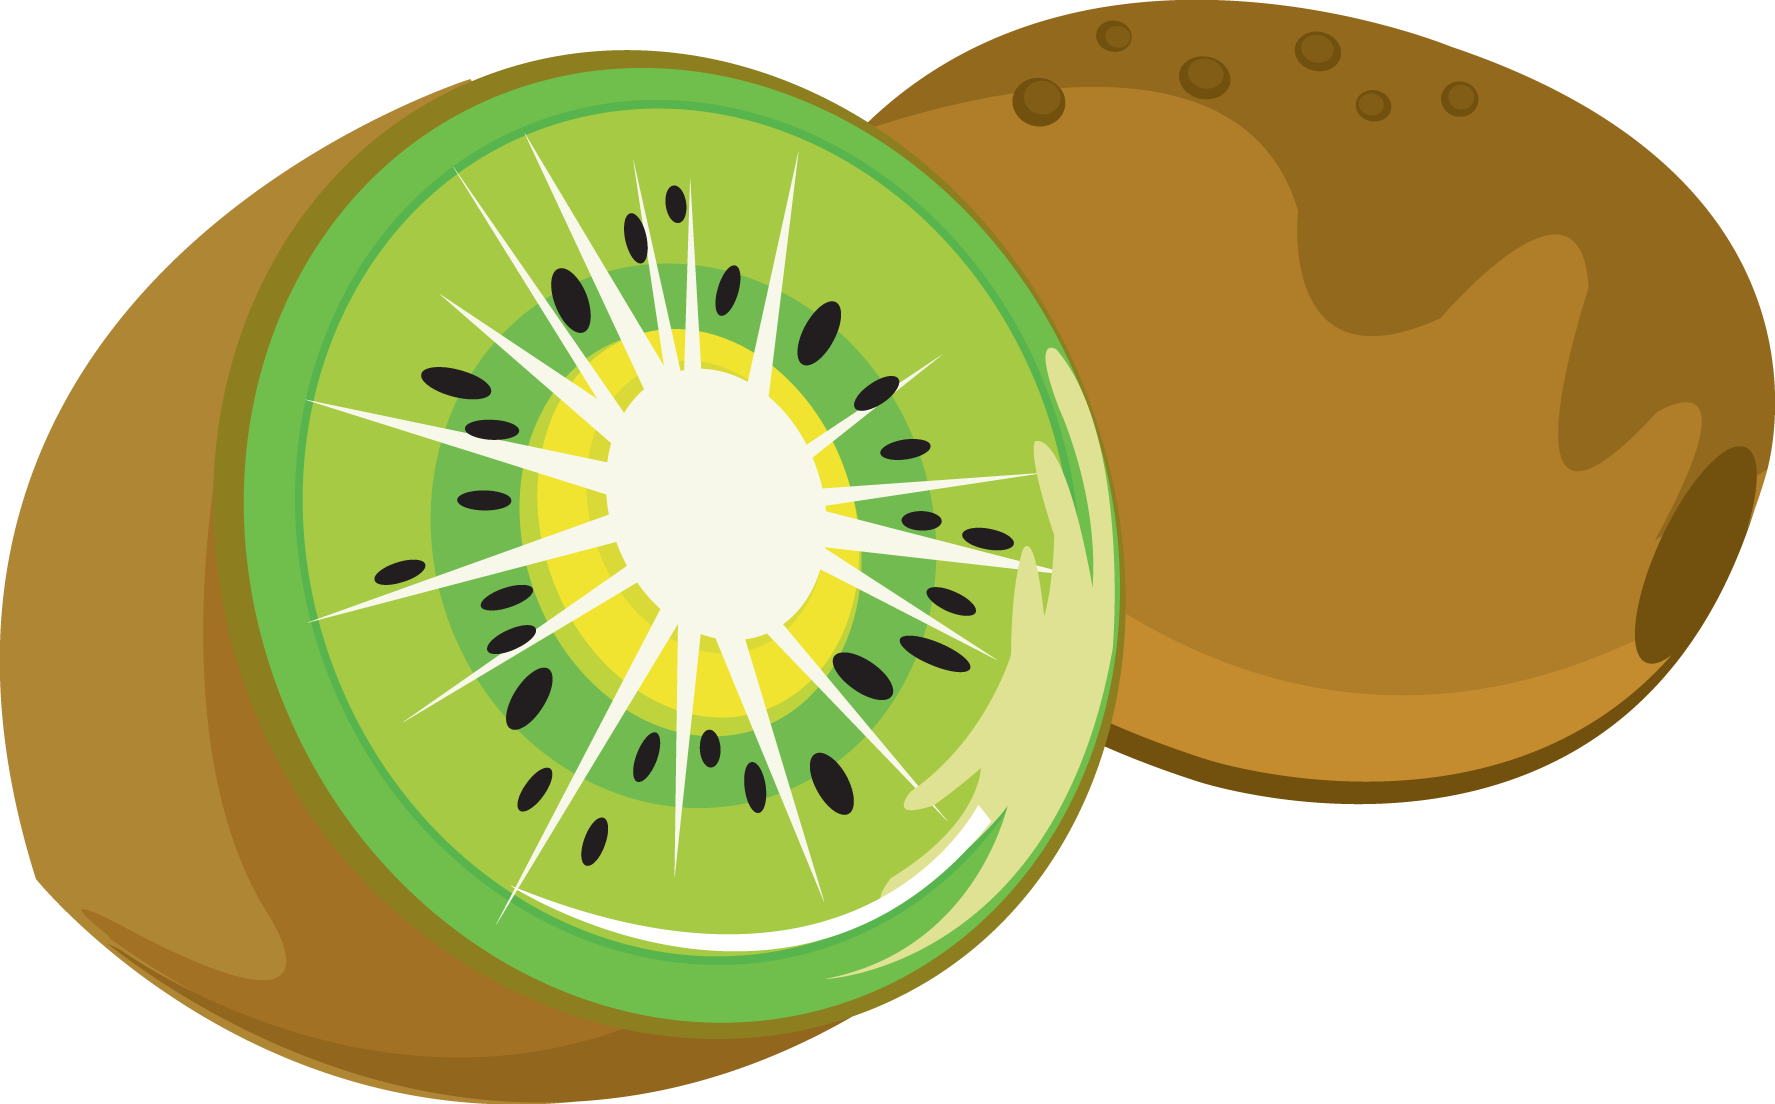 Kiwi clipart #18, Download drawings